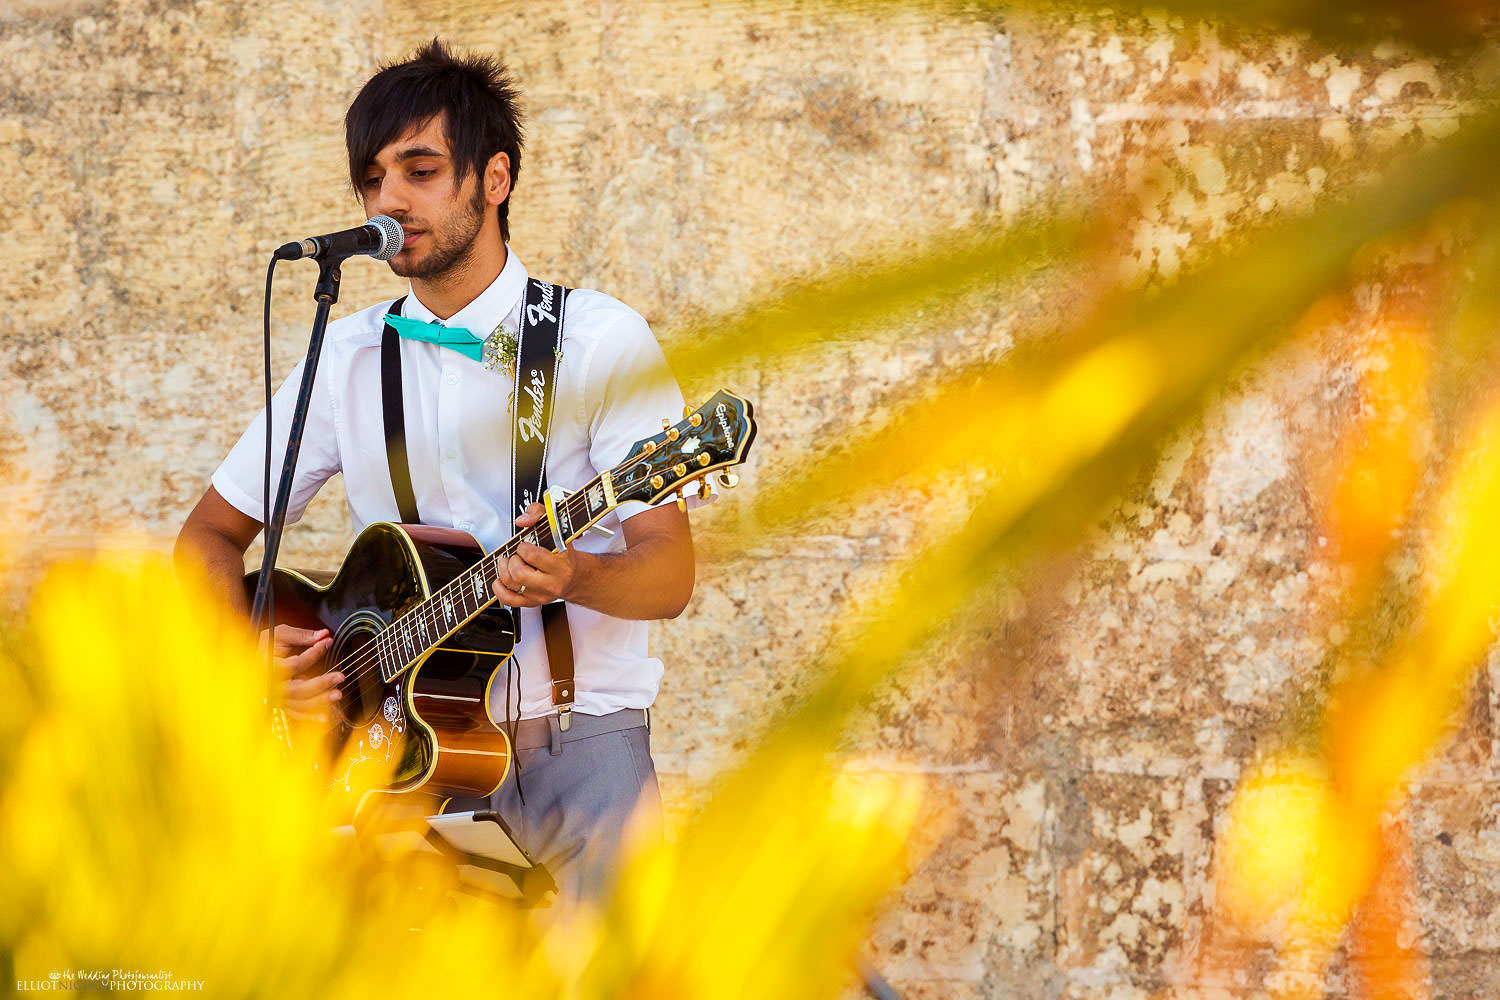 Wedding guest plays his guitar during the wedding ceremony